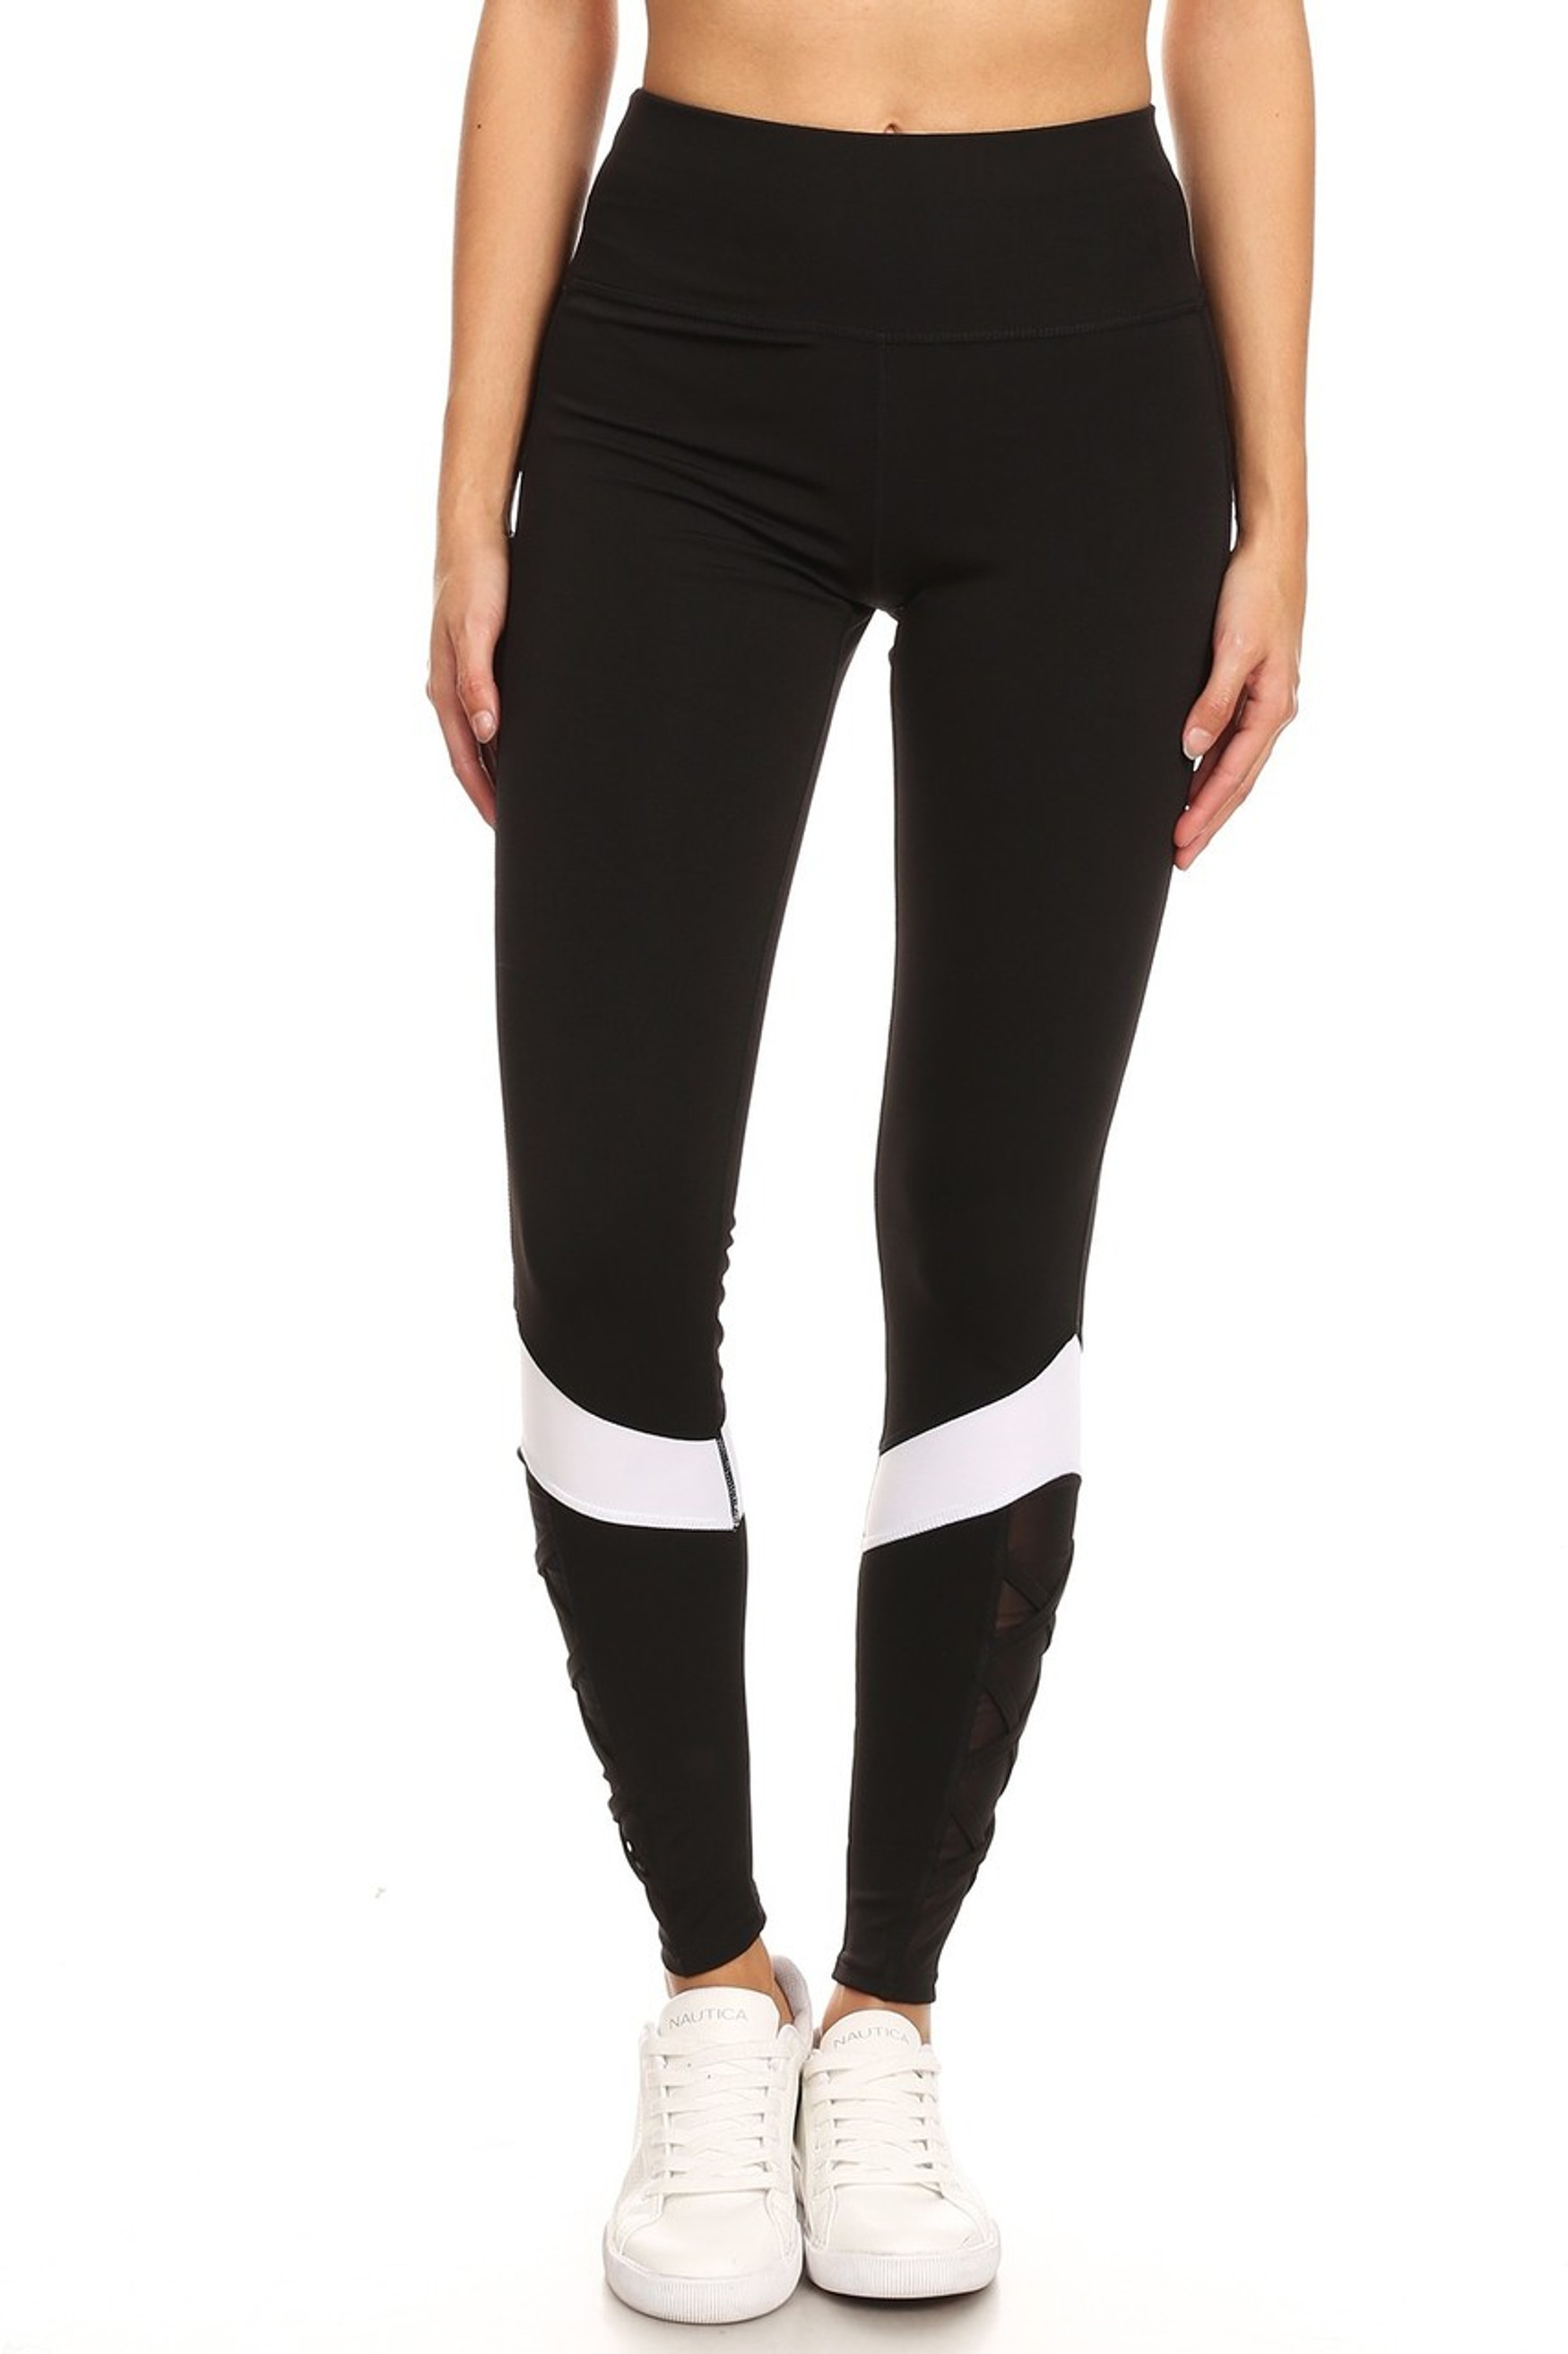 Sportsplex Ankle Crisscross Workout Leggings